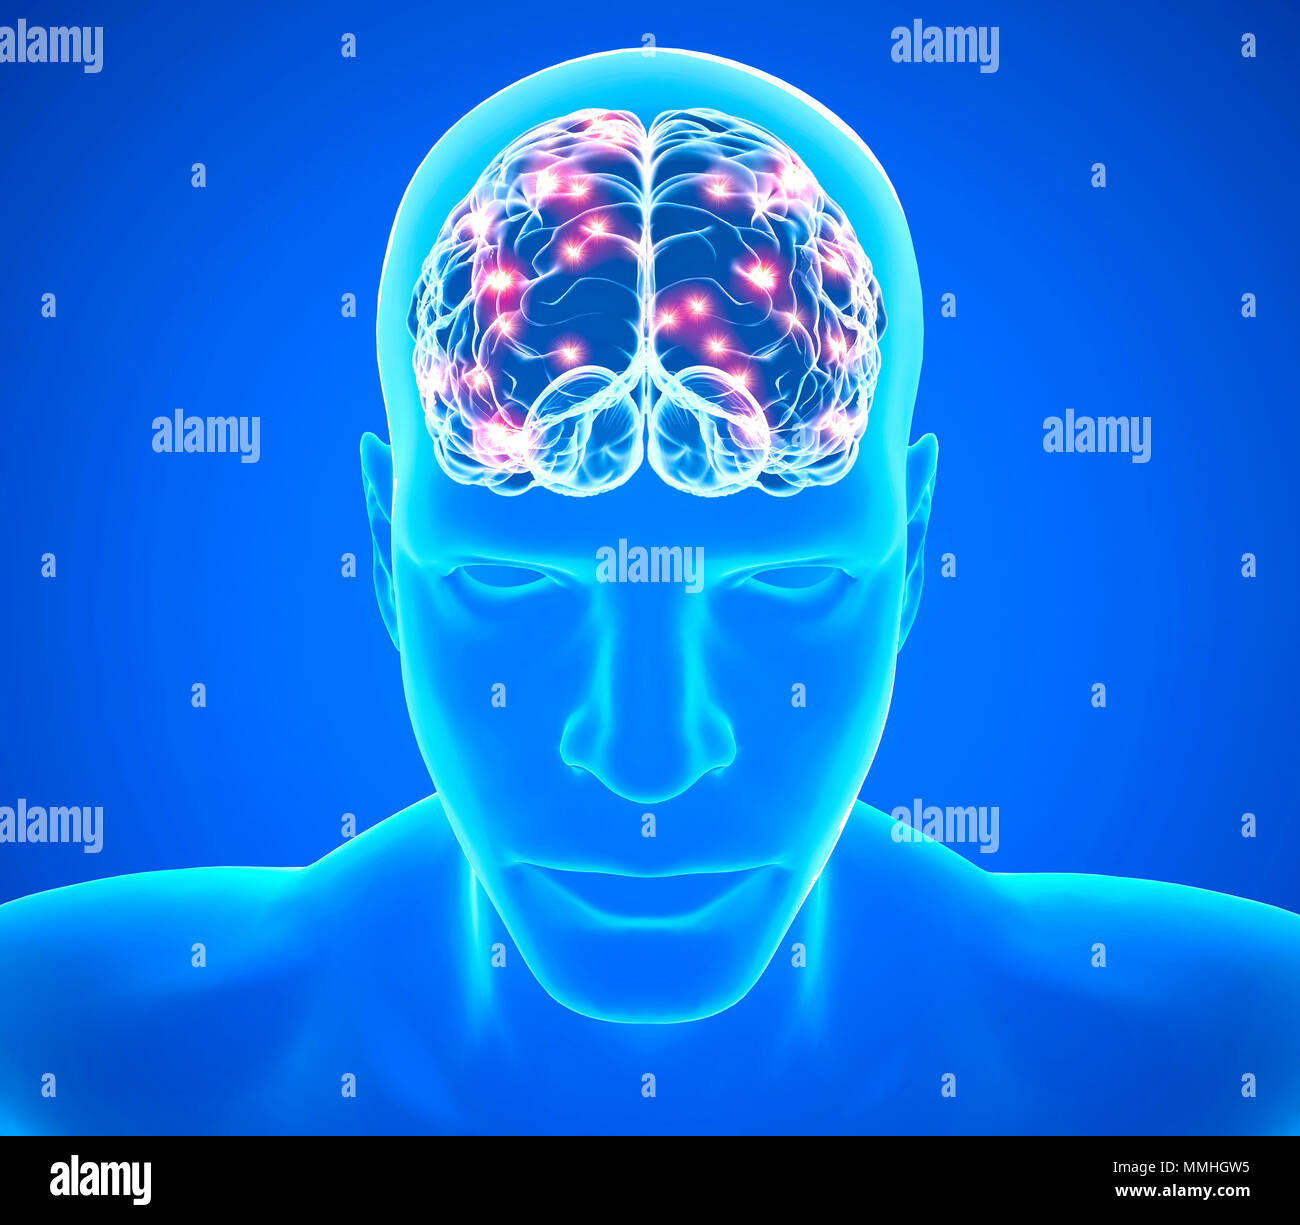 Brain degenerative diseases, Parkinson, synapses, neurons, Alzheimer's. Face of a man and brain x-ray. 3d rendering - Stock Image